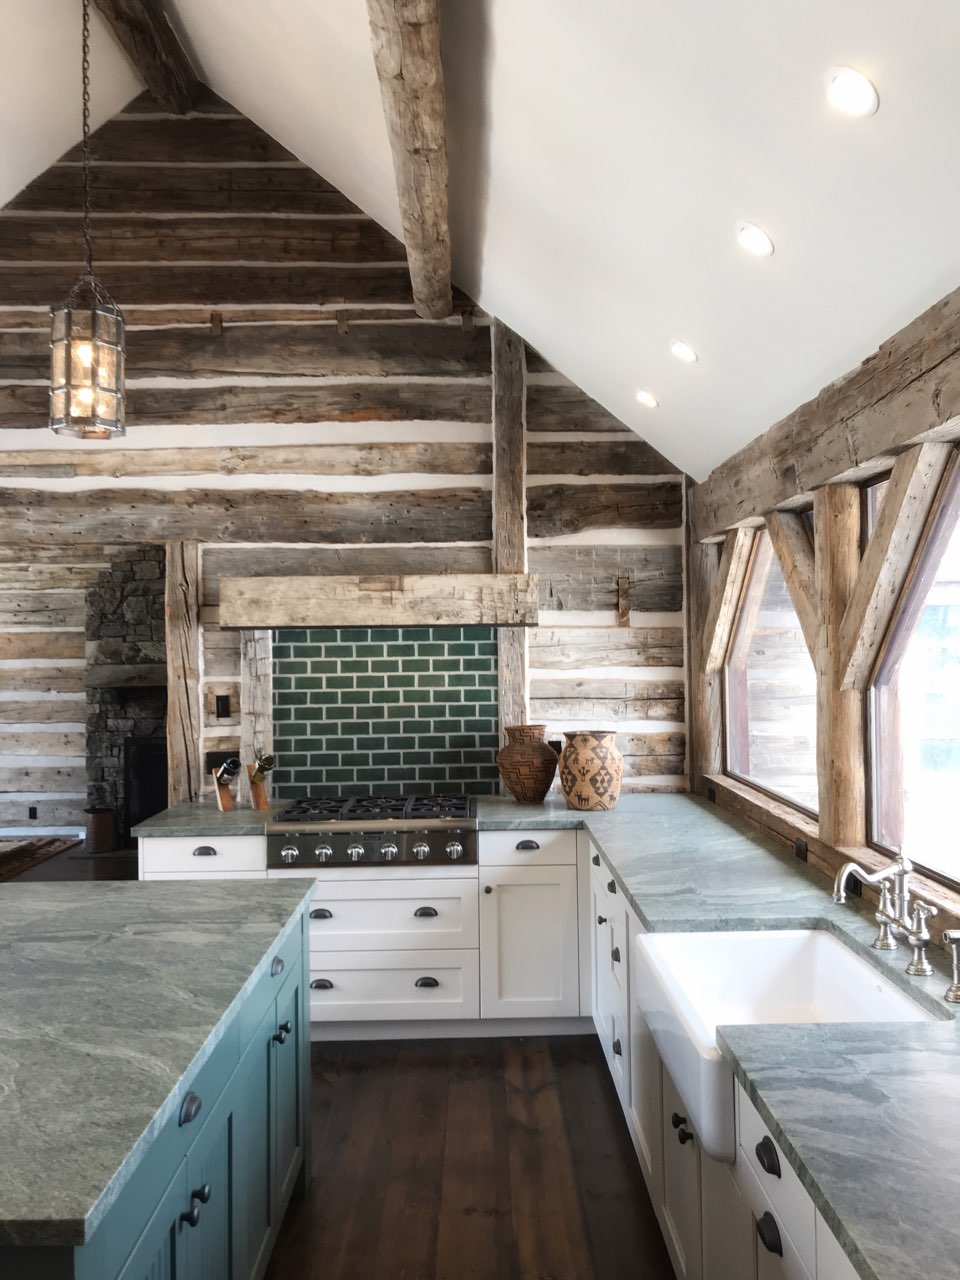 The full kitchen complete with rustic timbers and green granite countertops.